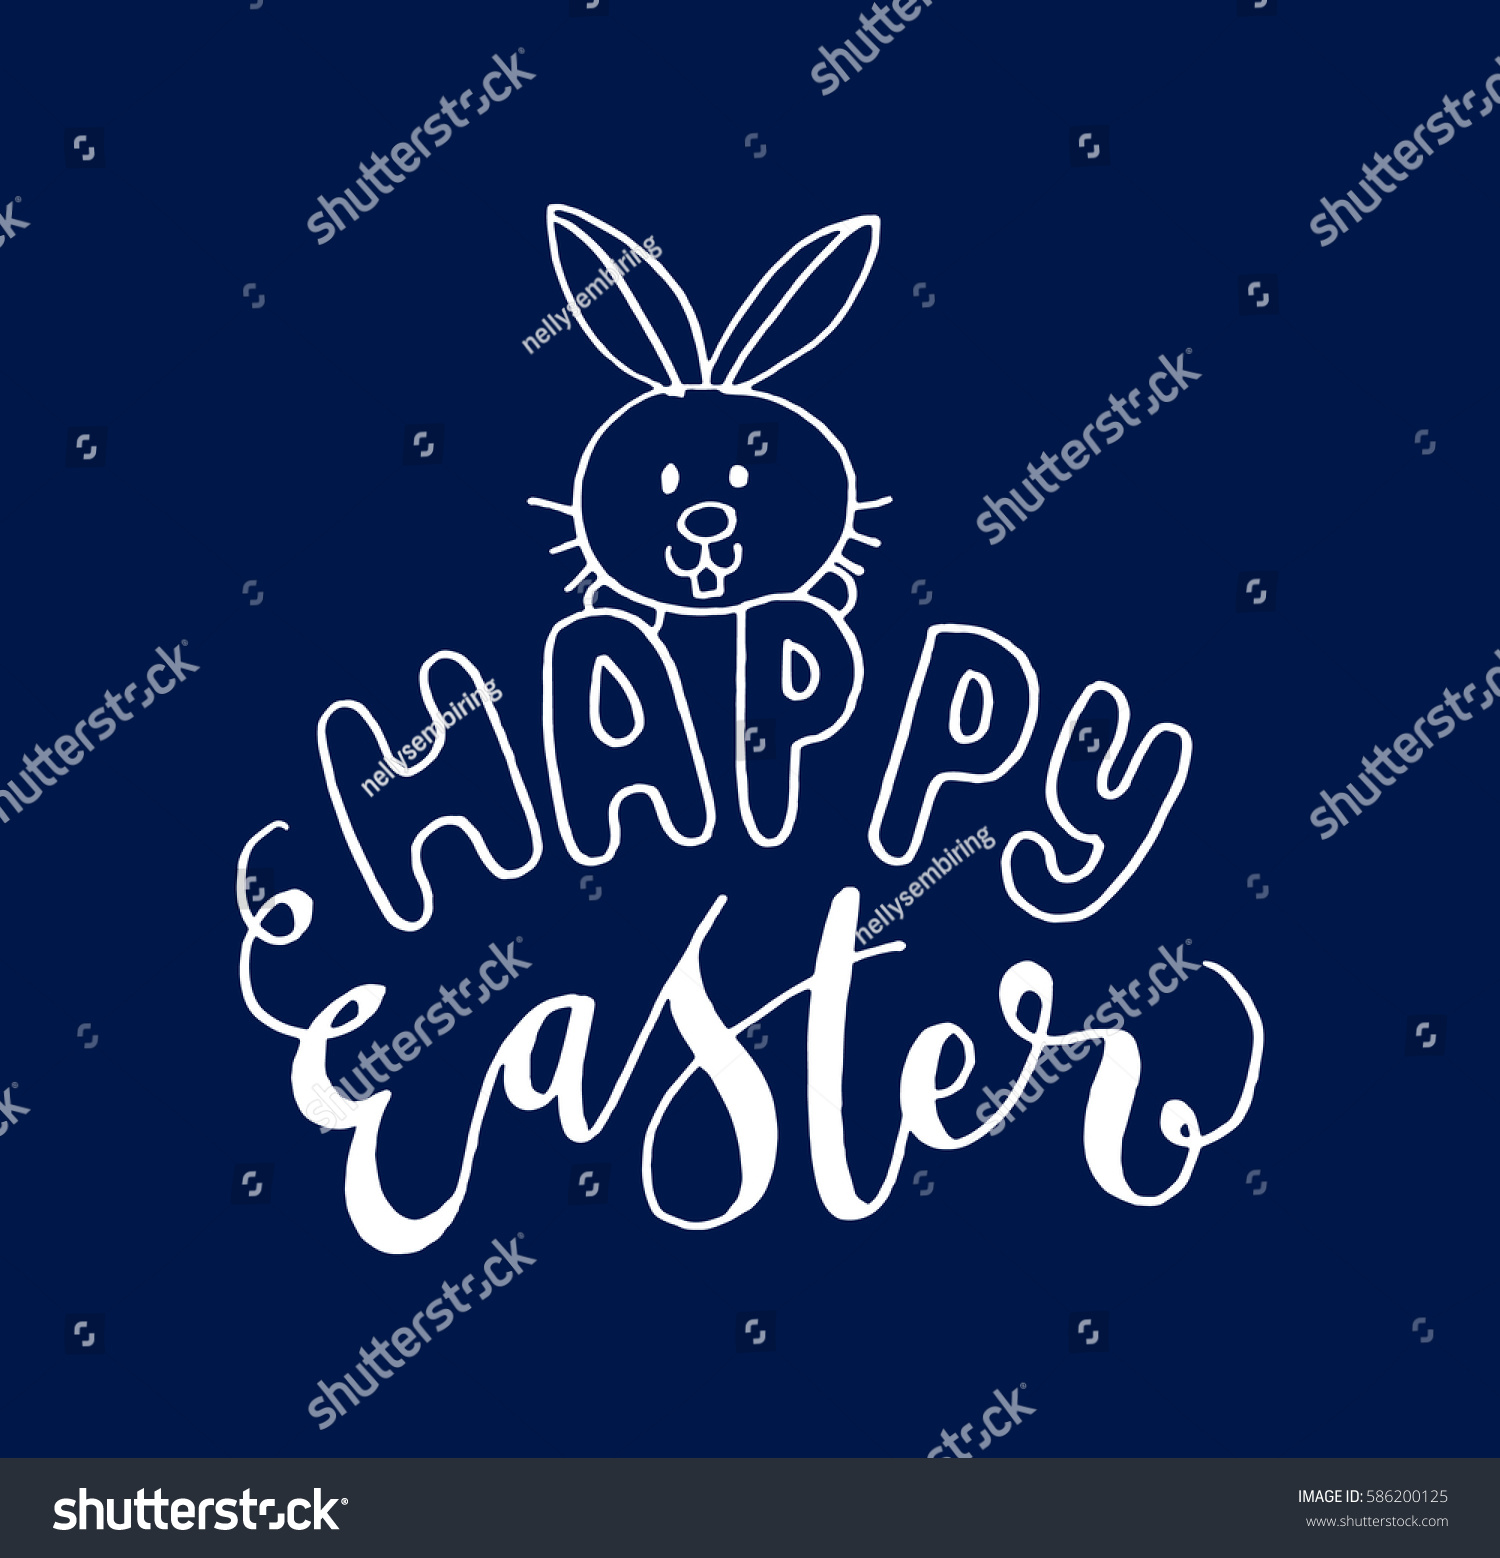 Happy easter bunny hand lettered quote stock vector